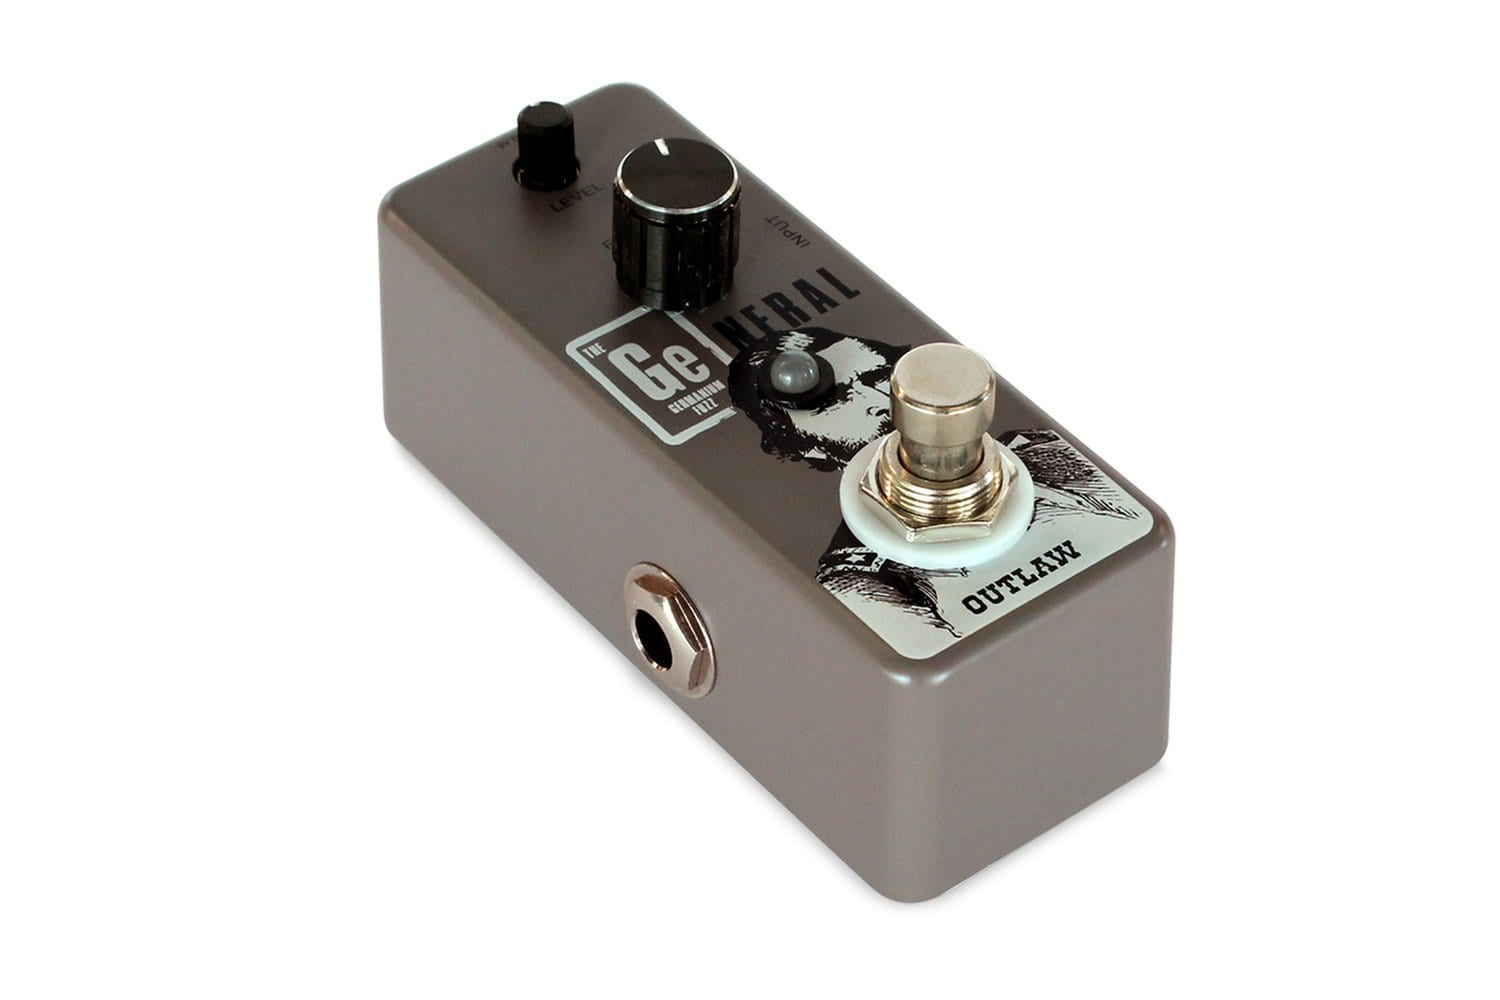 Outlaw Effects launches Dumbleweed Overdrive, General Germanium Fuzz